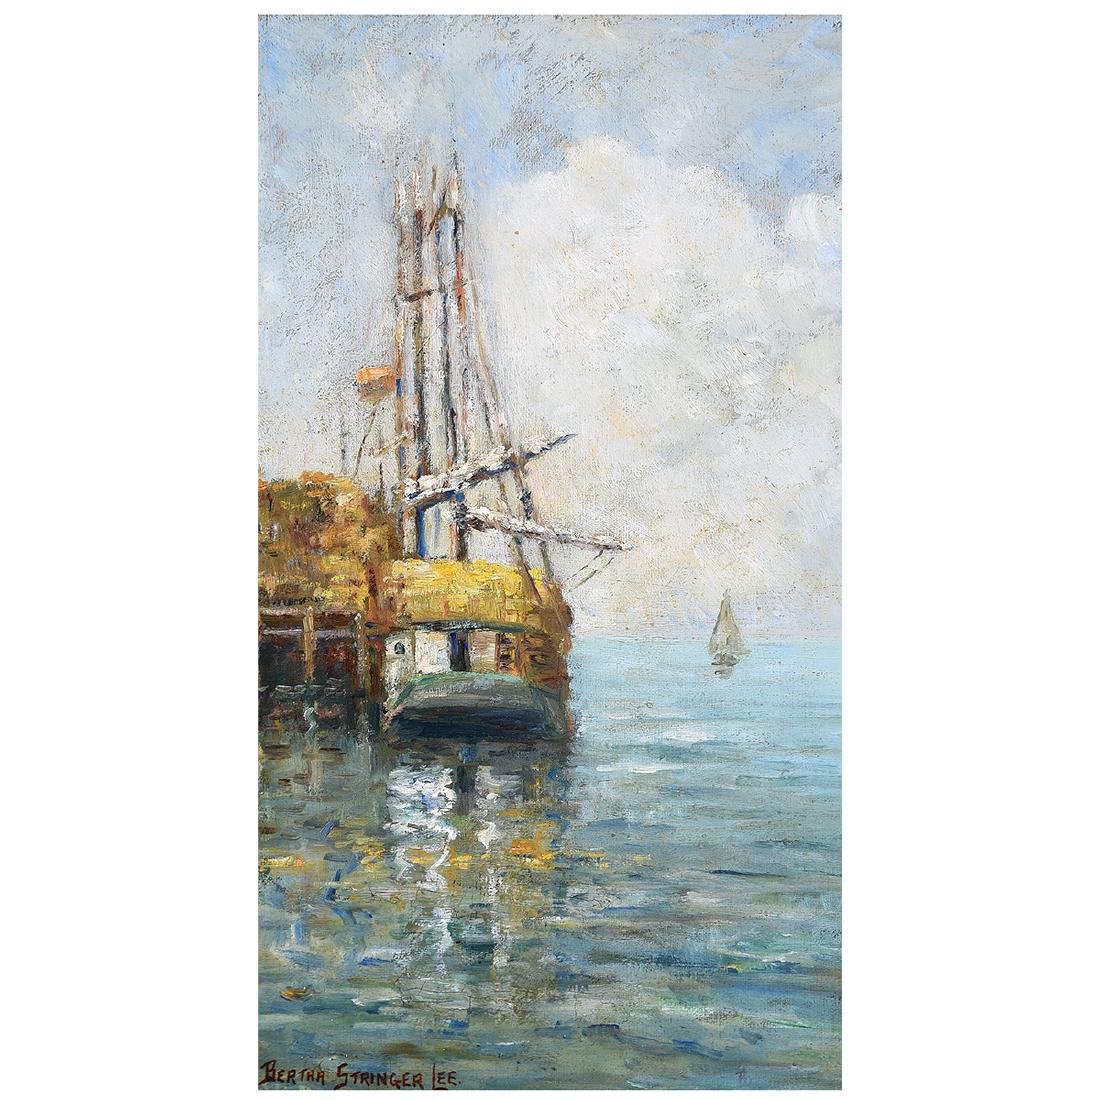 "Bertha Stringer Lee ""Sailboat in Dock"" oil on panel"